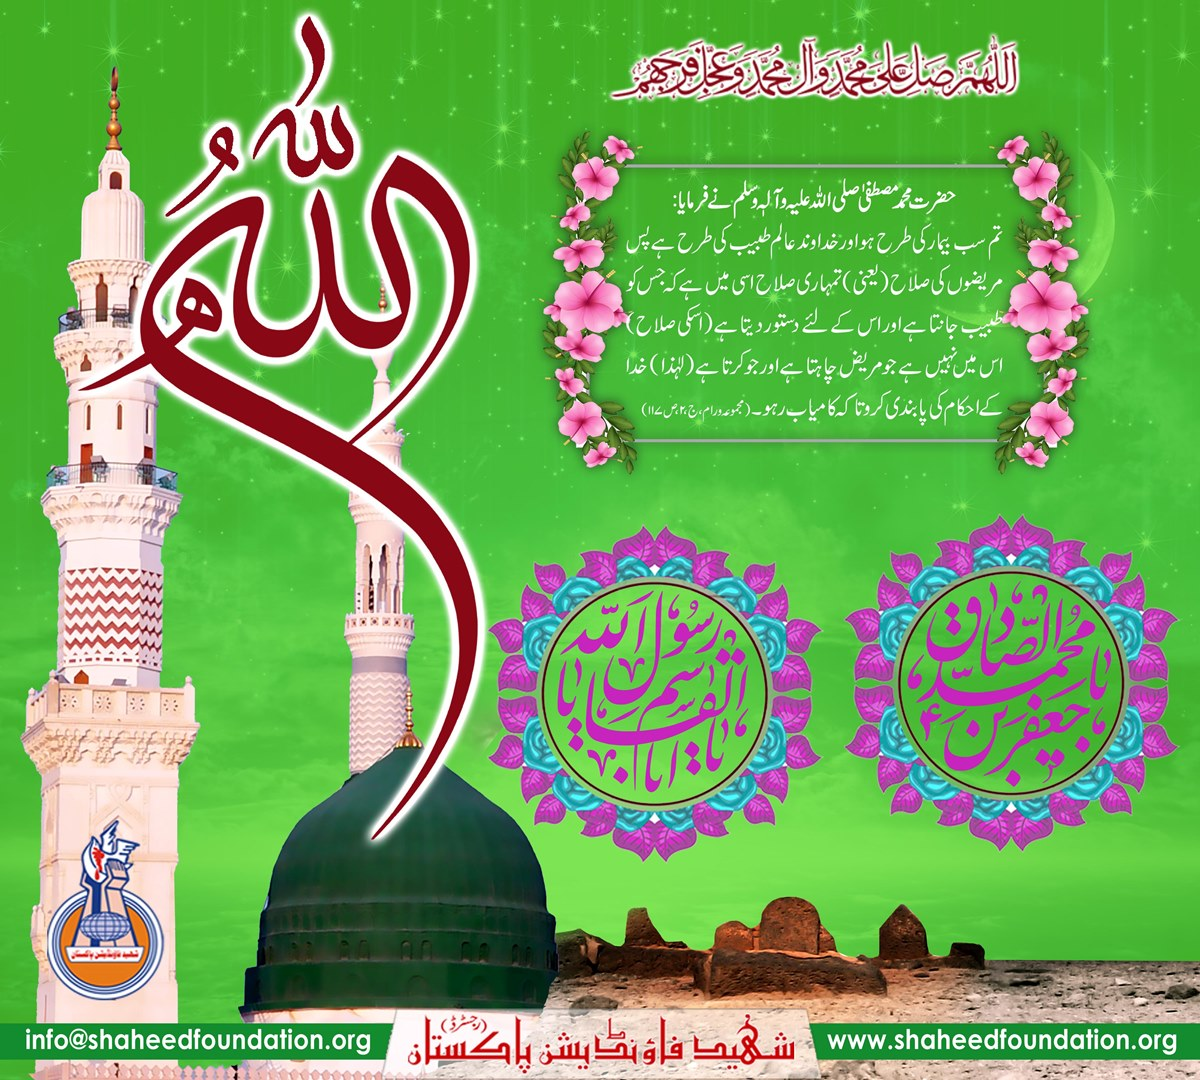 17th Rabi-ul-Awwal: Birth Anniversary of Rasool-e-Khuda[SAWW] and His Great Grandson Imam Jafar al-Sadiq[AS]